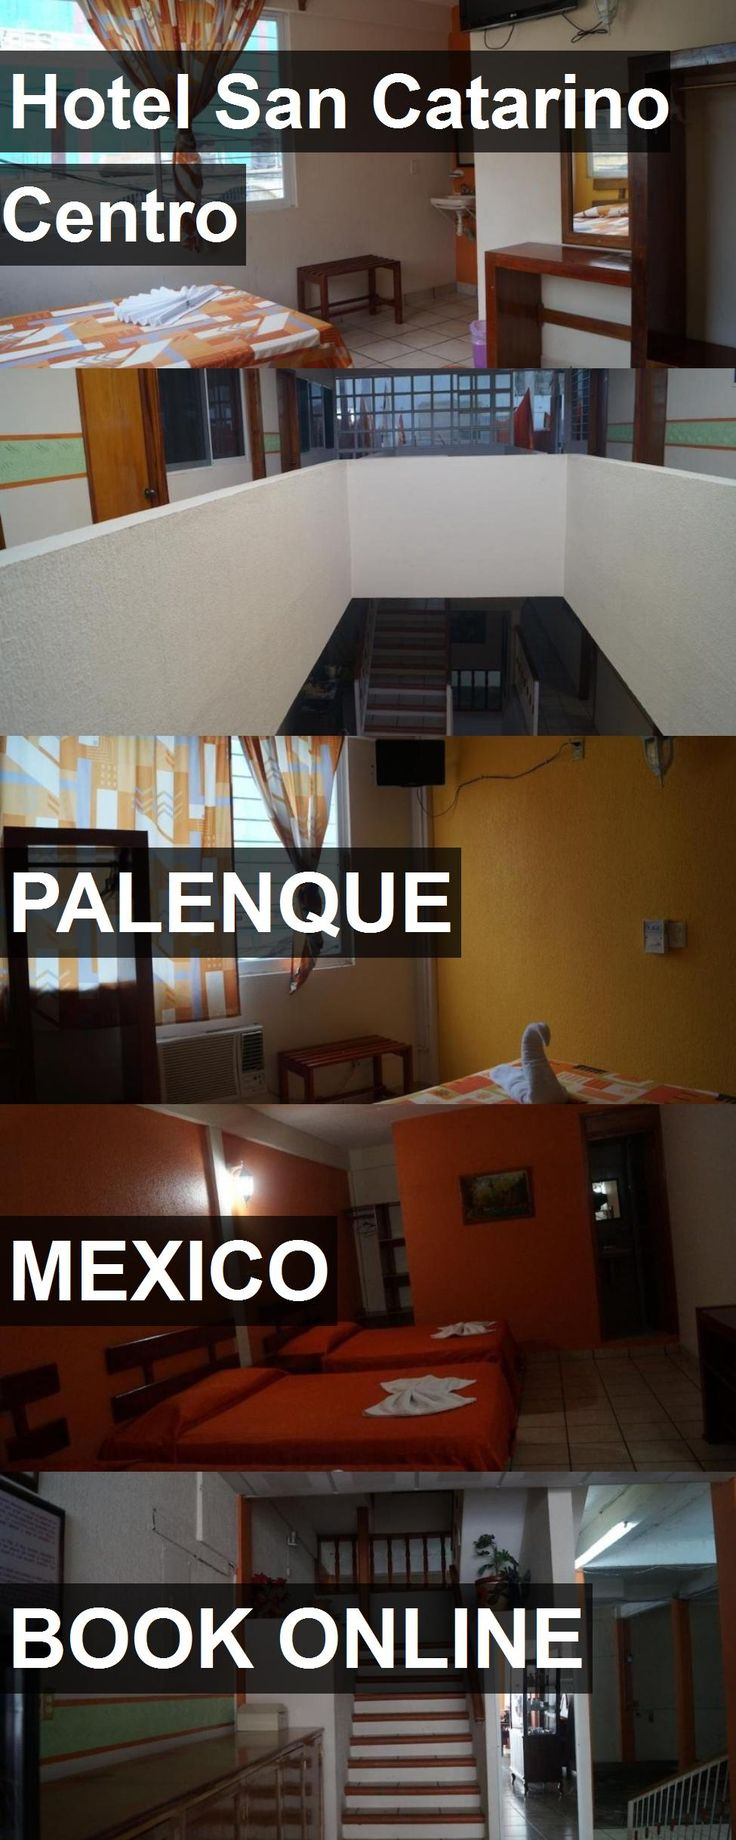 Hotel Hotel San Catarino Centro in Palenque, Mexico. For more information, photos, reviews and best prices please follow the link. #Mexico #Palenque #HotelSanCatarinoCentro #hotel #travel #vacation